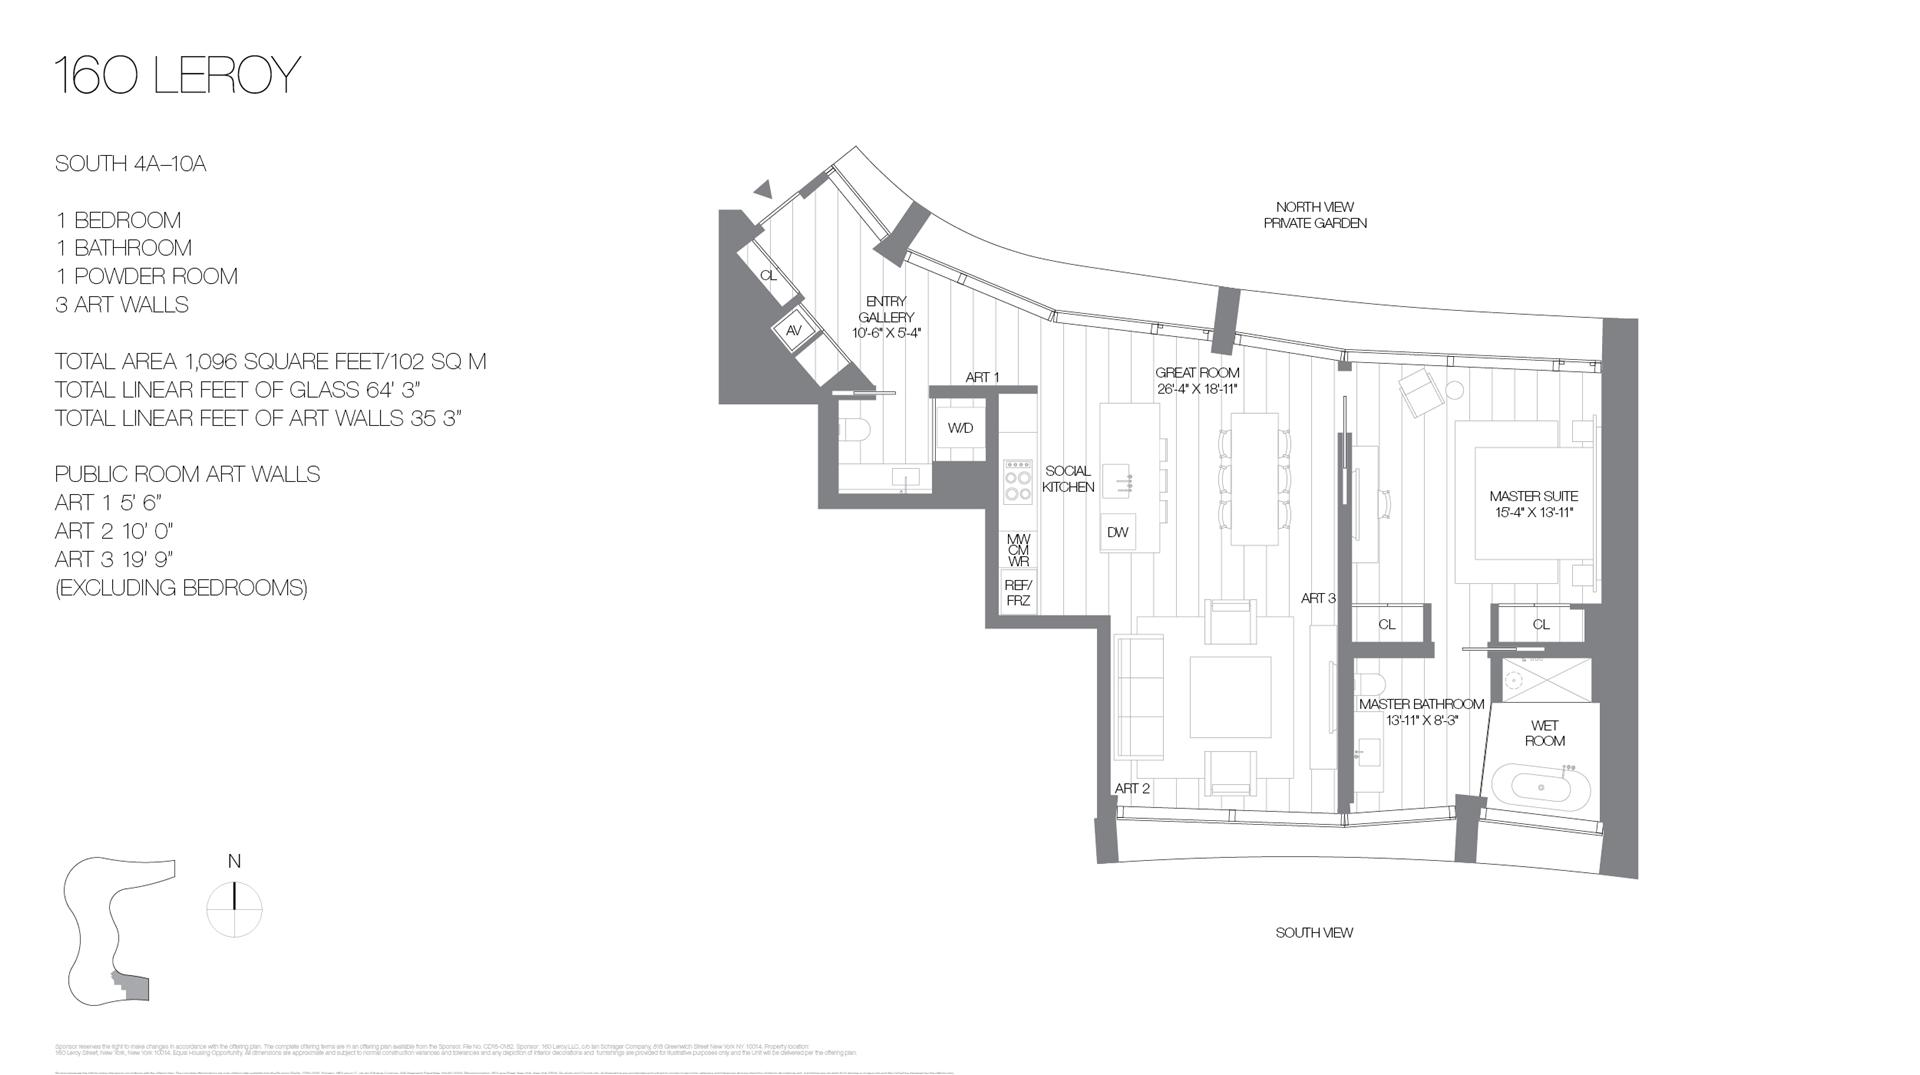 Floor plan of 160 Leroy St, SOUTH10A - West Village - Meatpacking District, New York